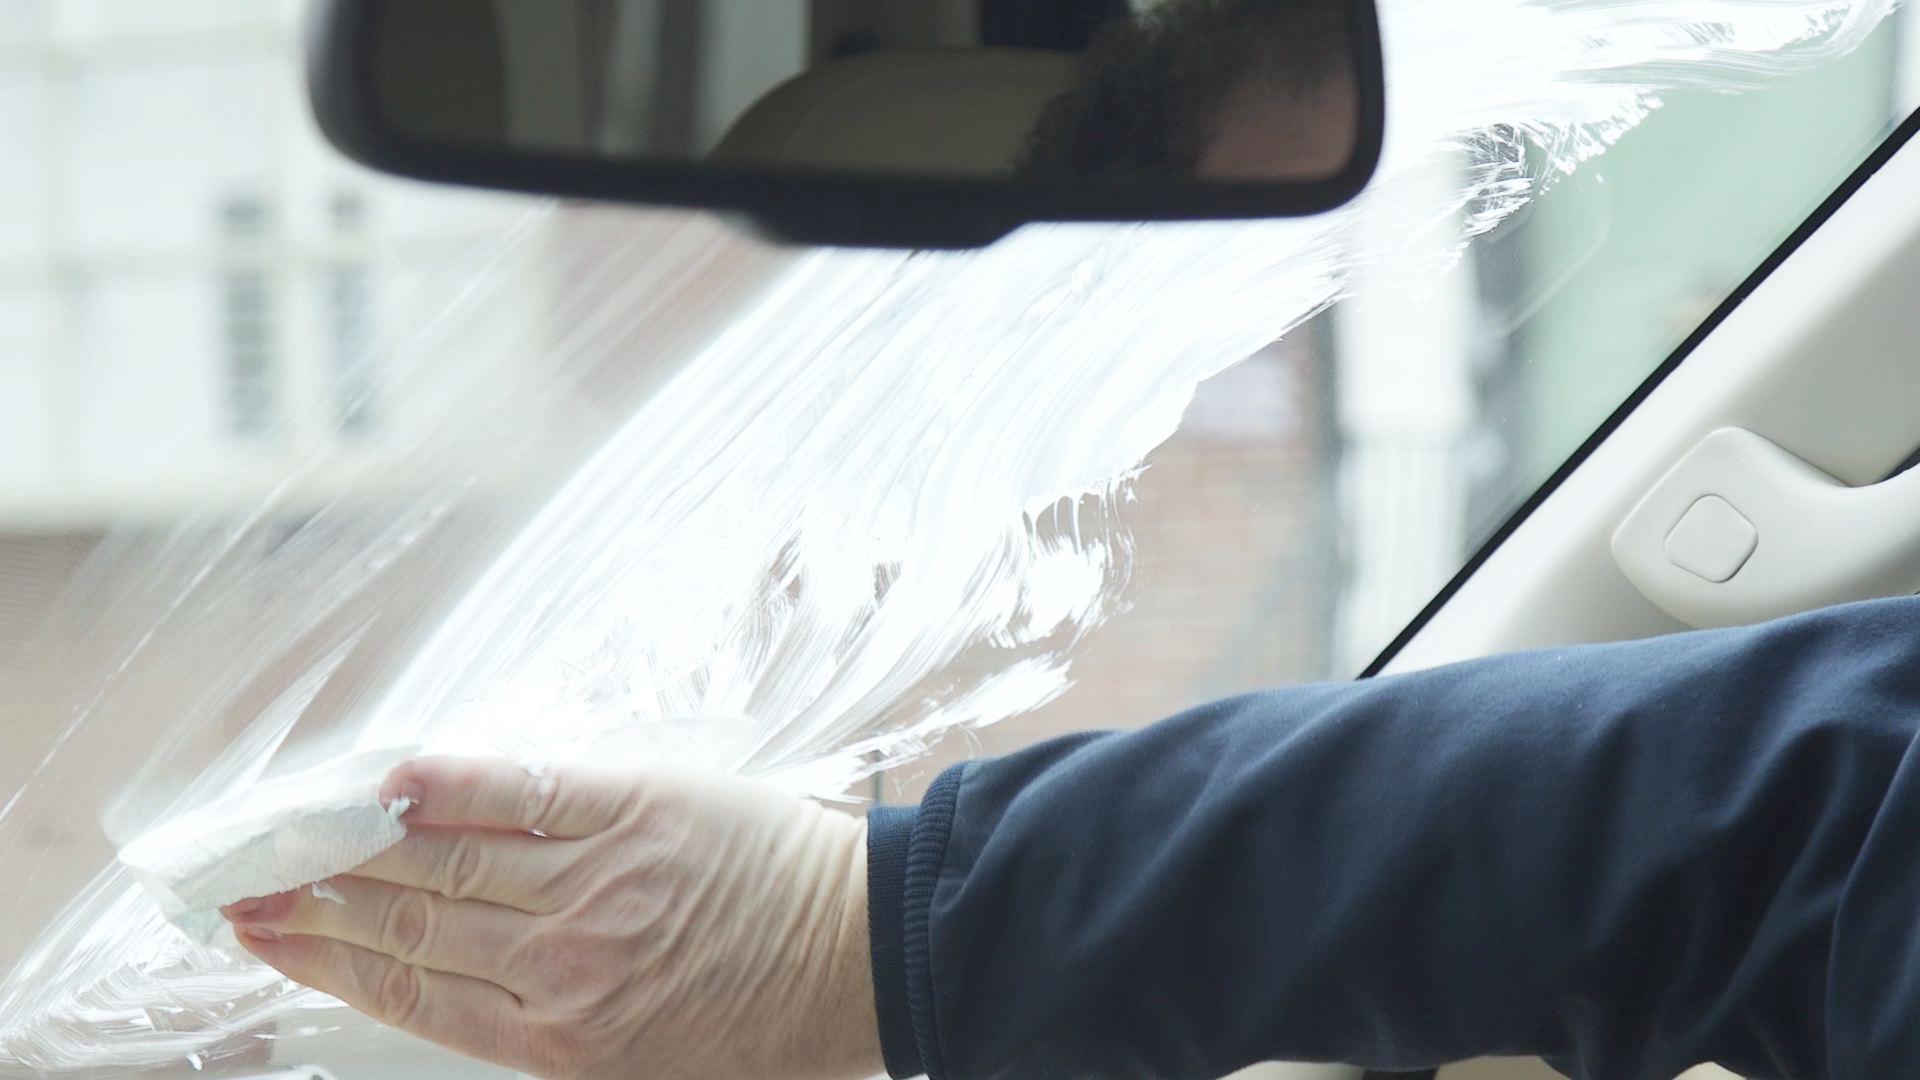 how to defrost car windows quickly: use a potato, rubbing